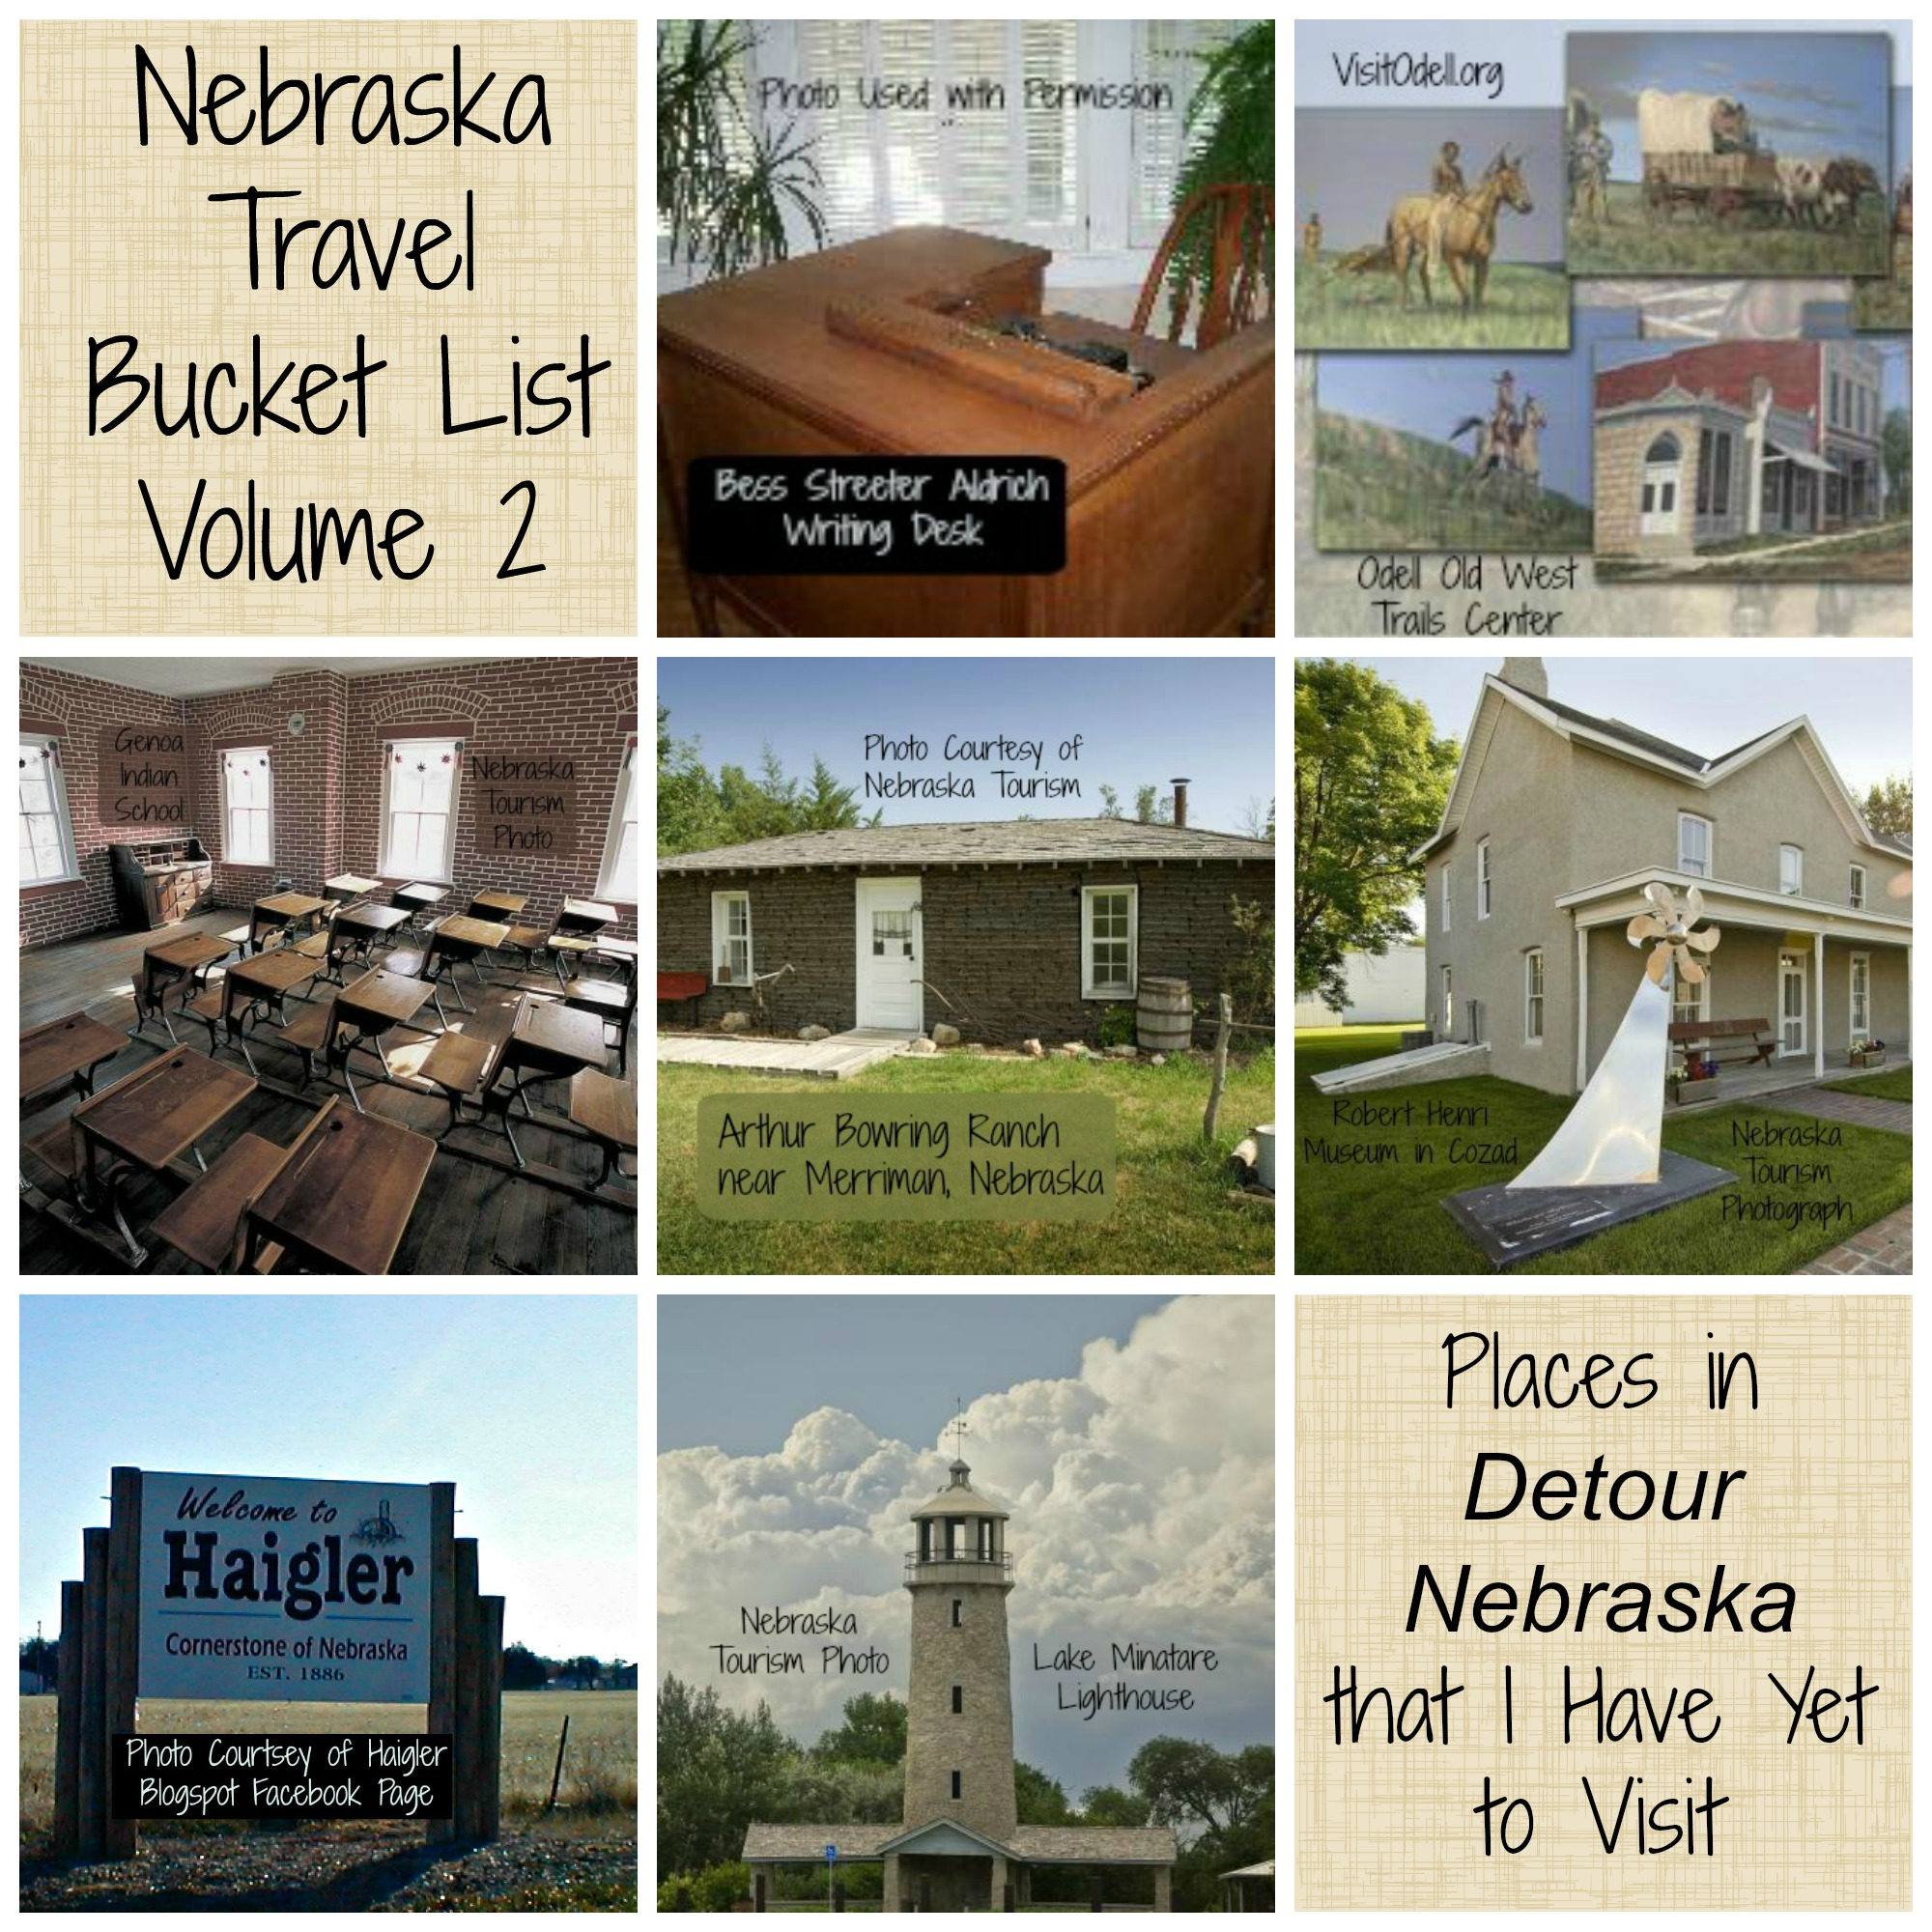 Nebraska Travel Bucket List Volume 2